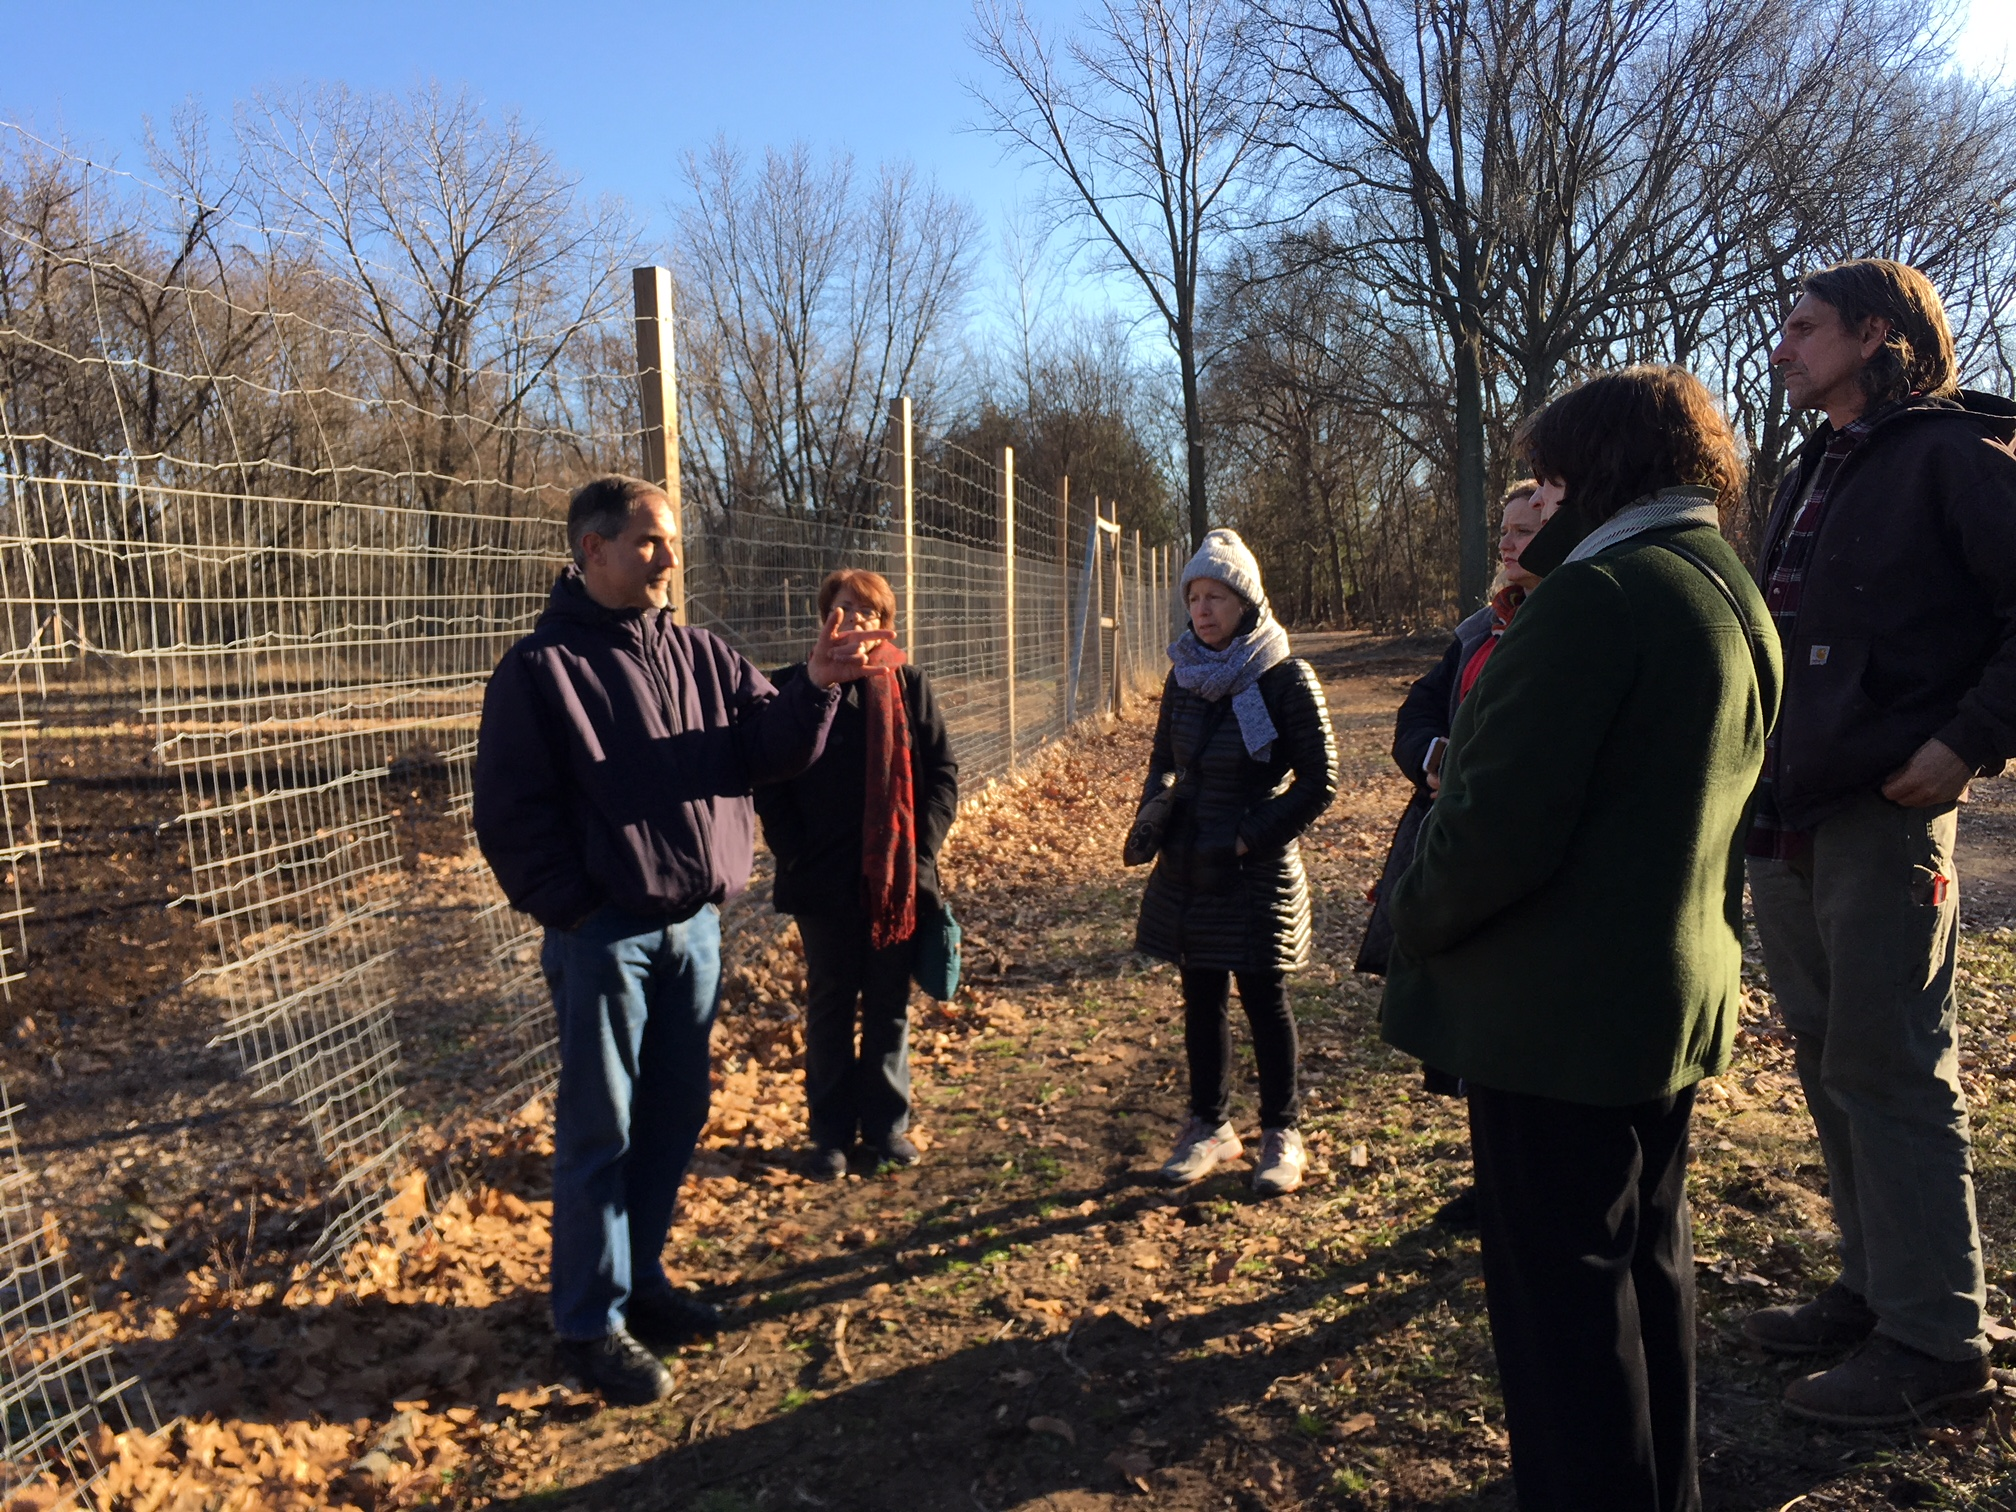 Conference House Park Director John Kilcullen talks about the history of Gericke Farm with our visiting group.